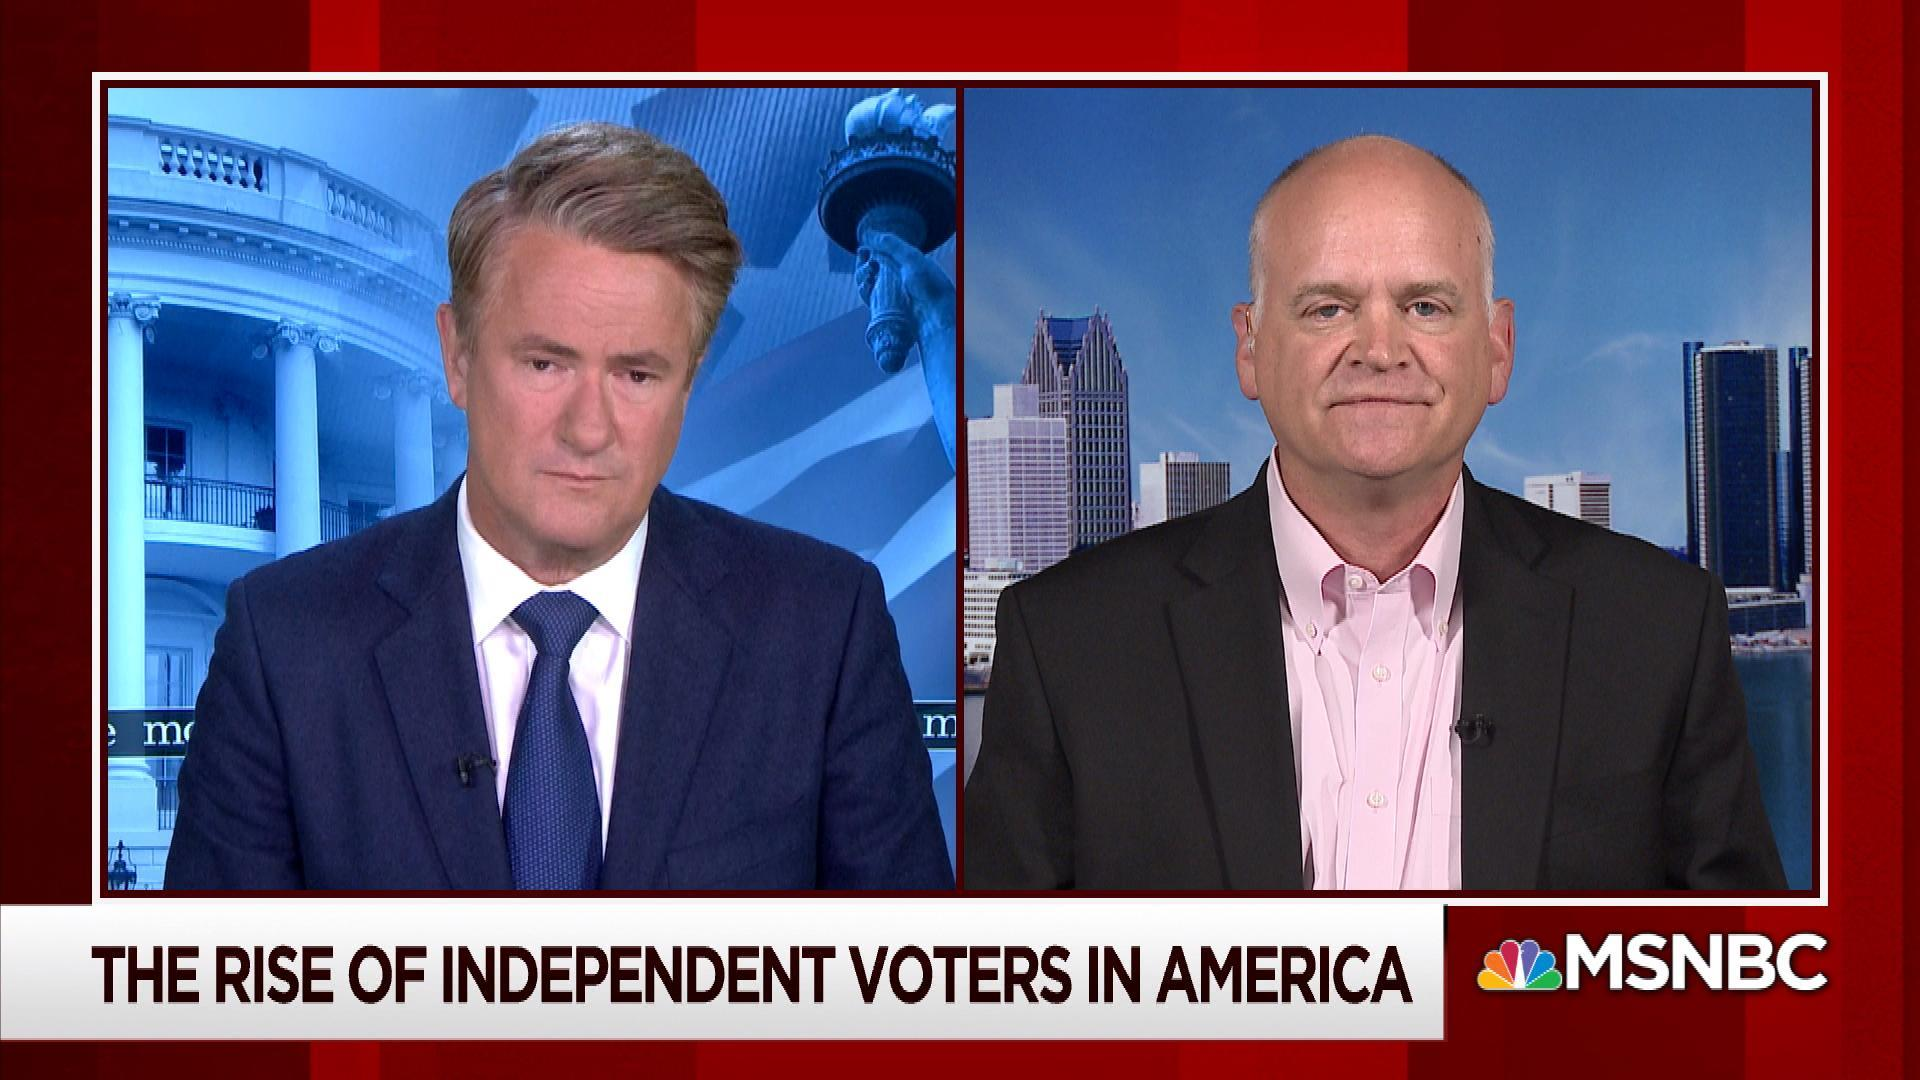 The rise of independent voters in America